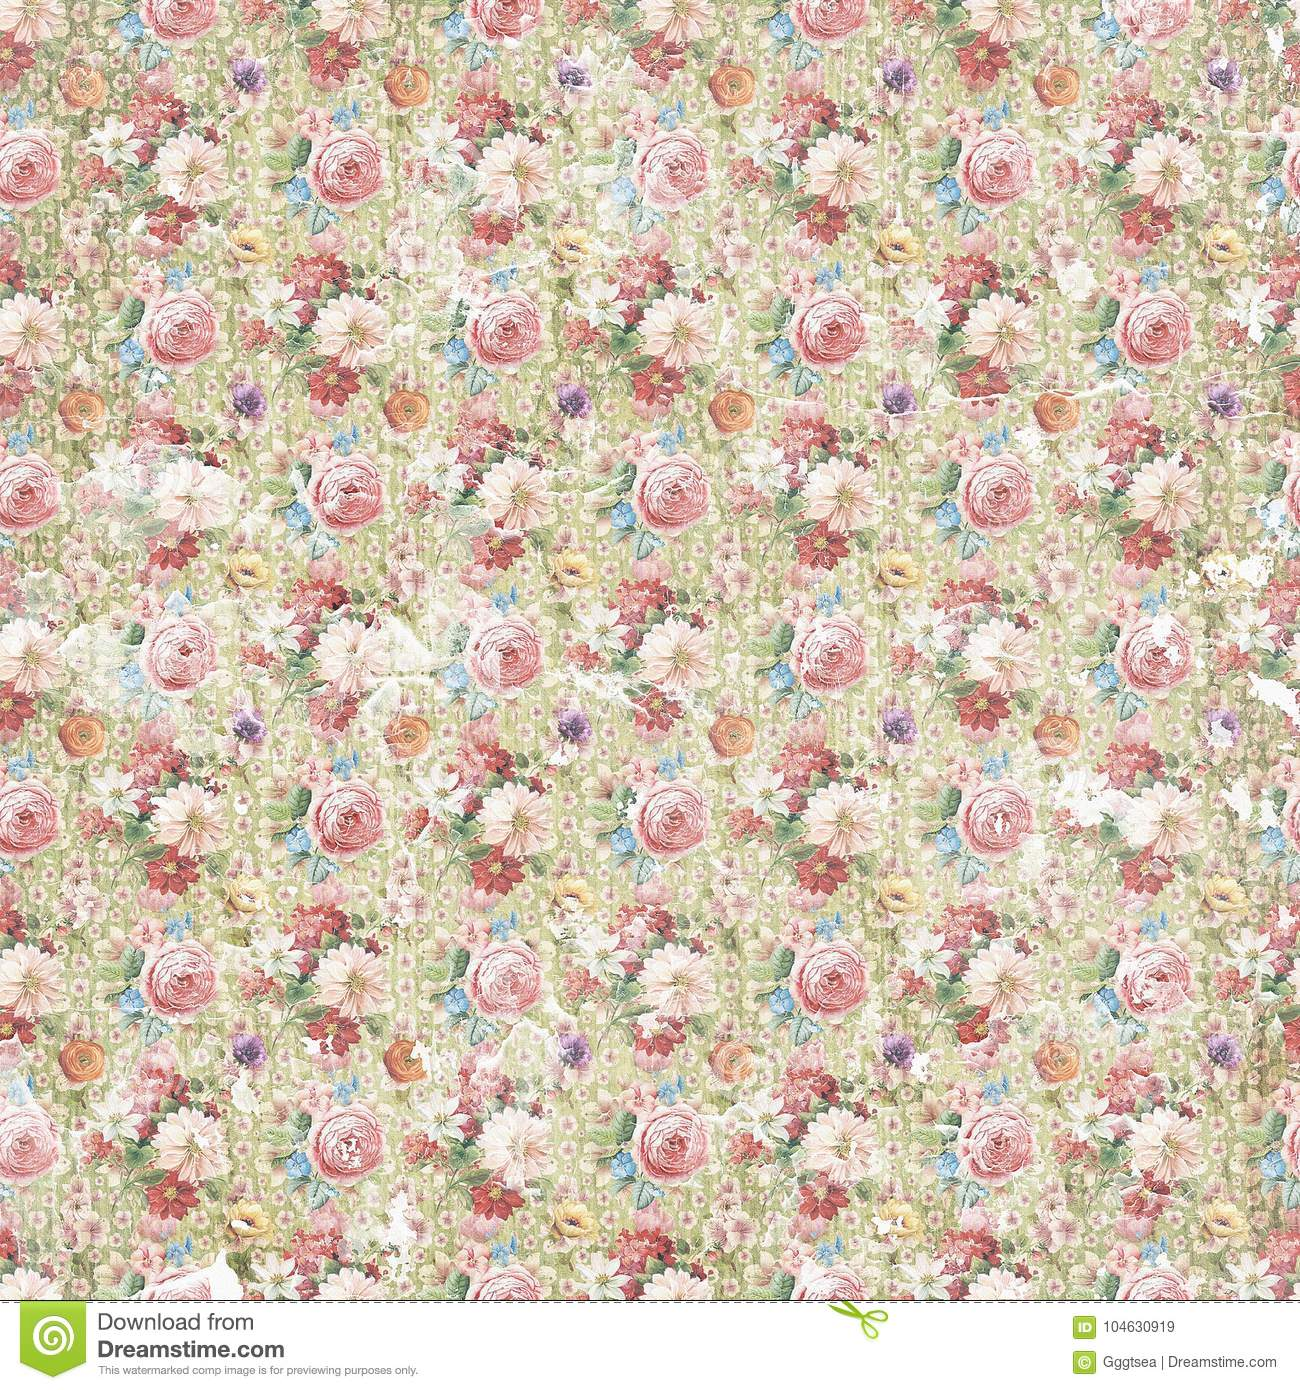 Vintage antique shabby flower paper background, seamless repeat pattern texture